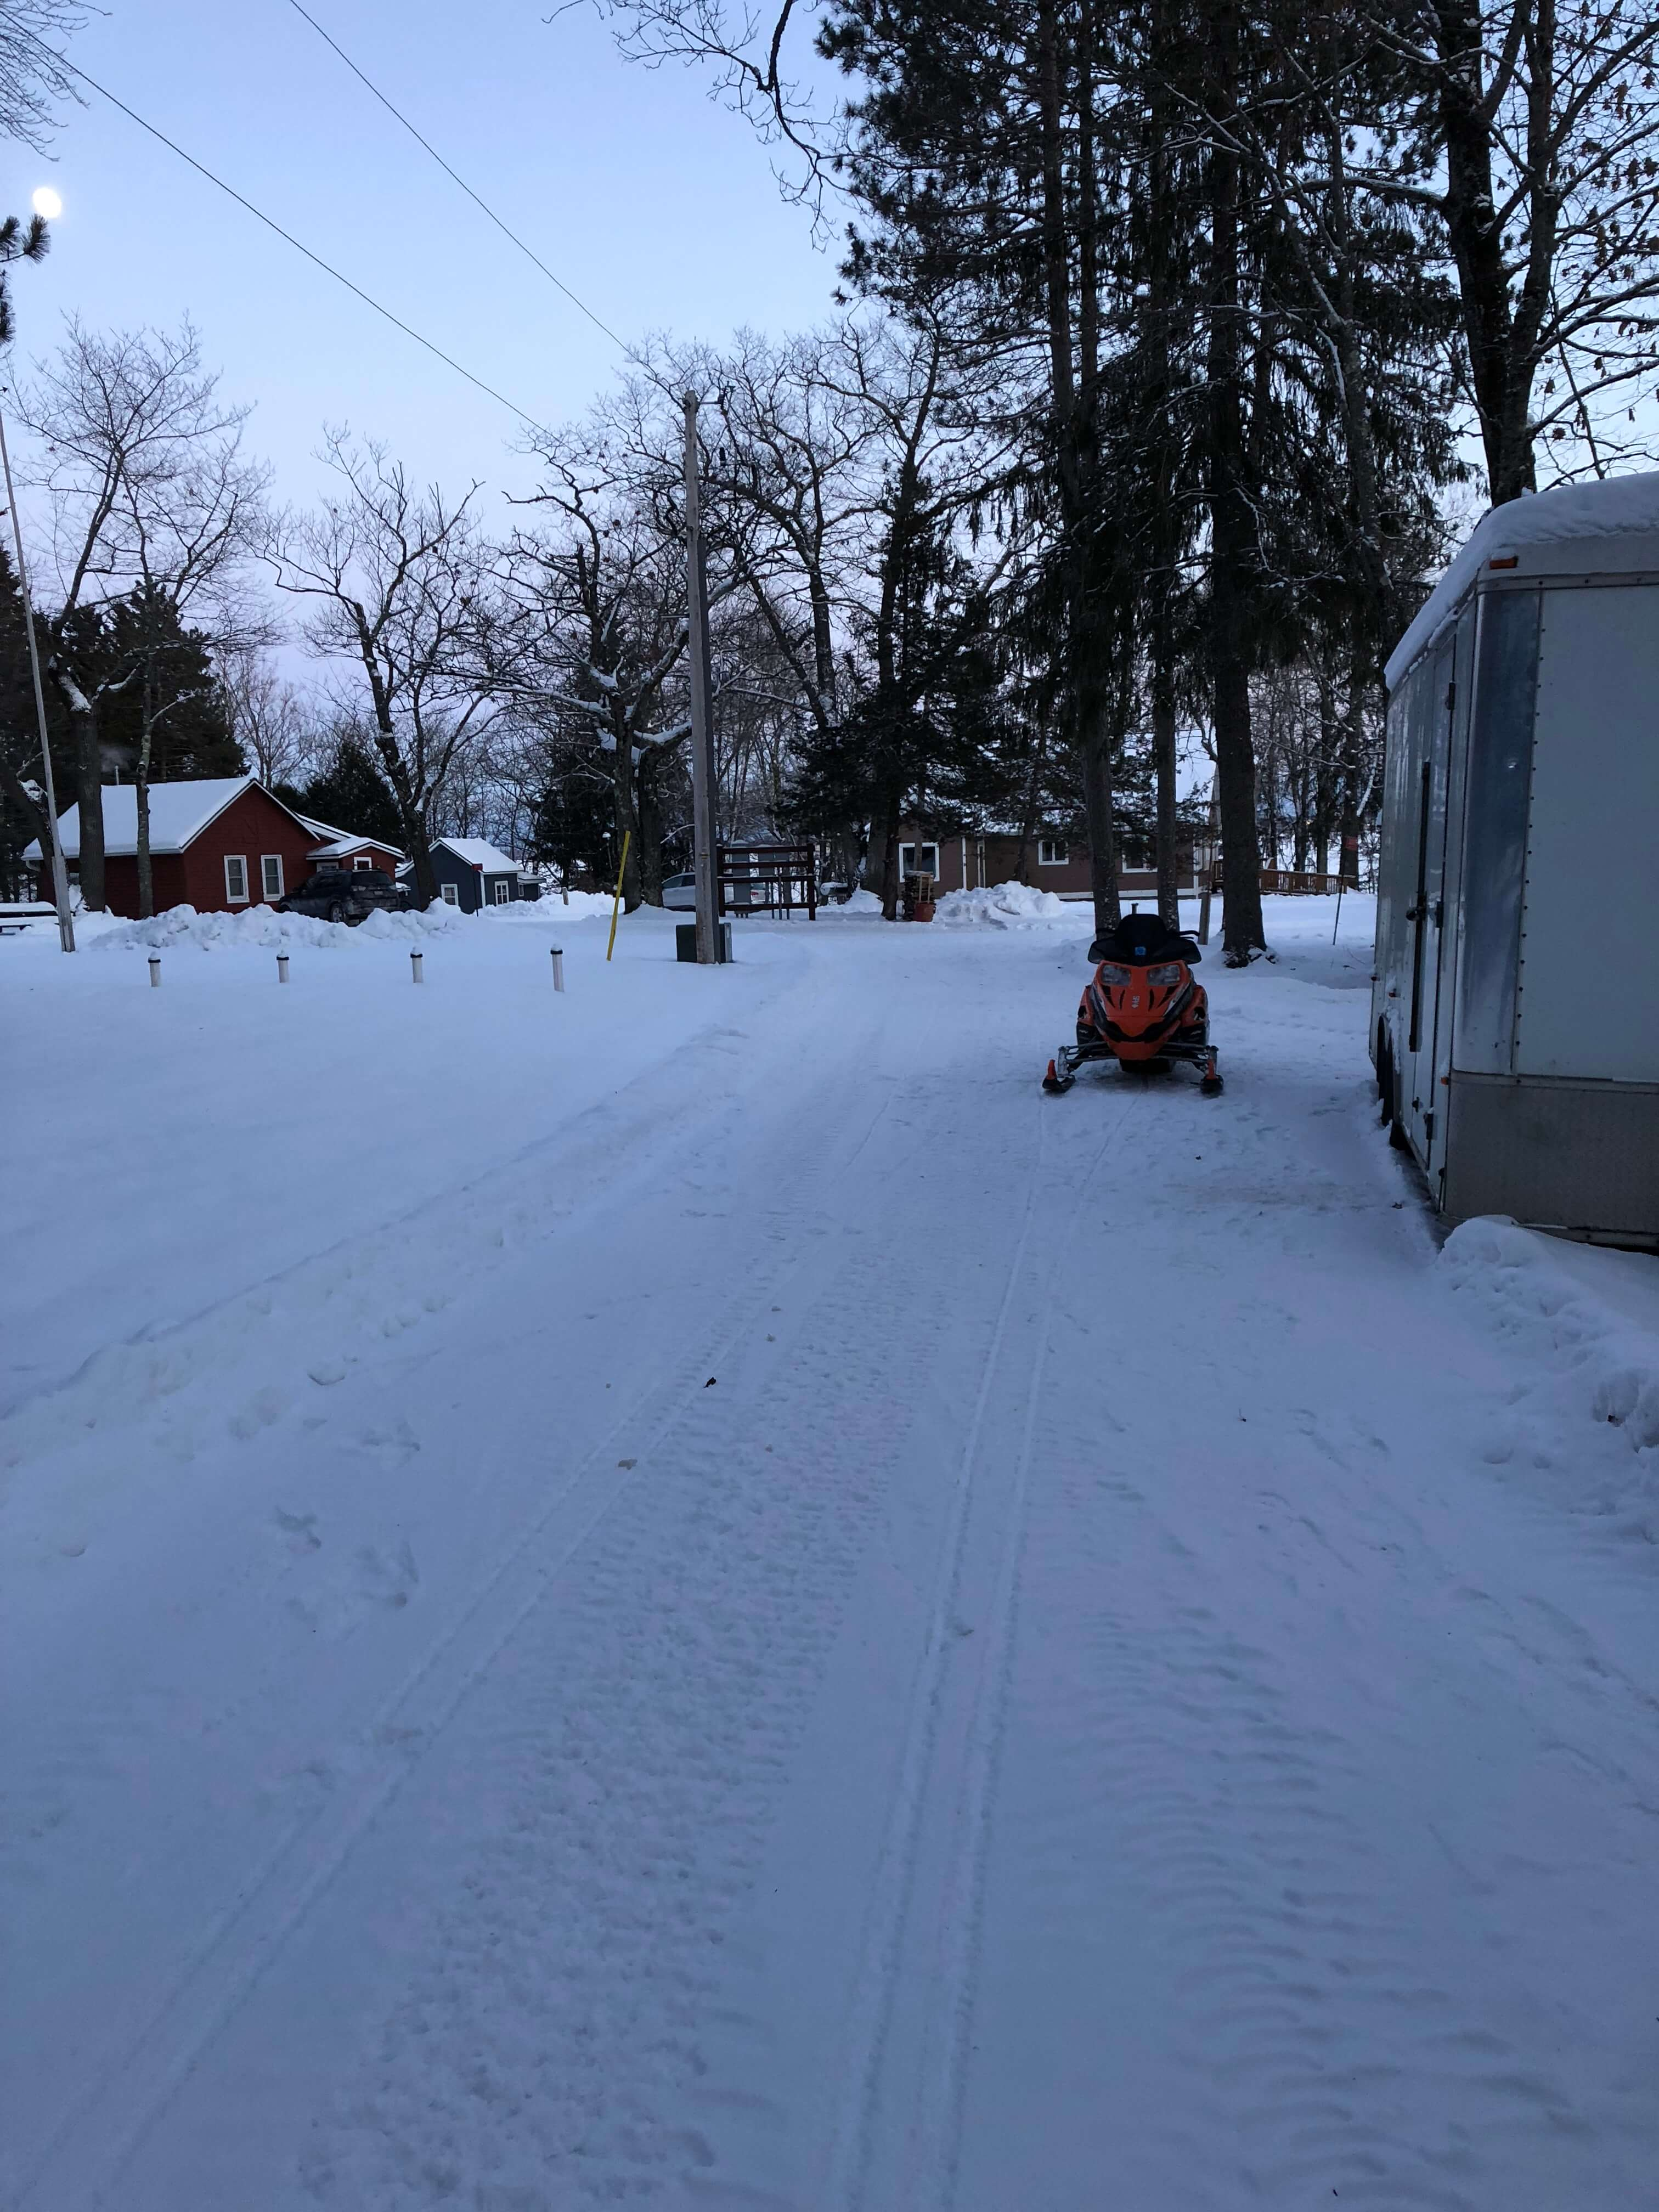 snowmobile and snow at mission springs resort